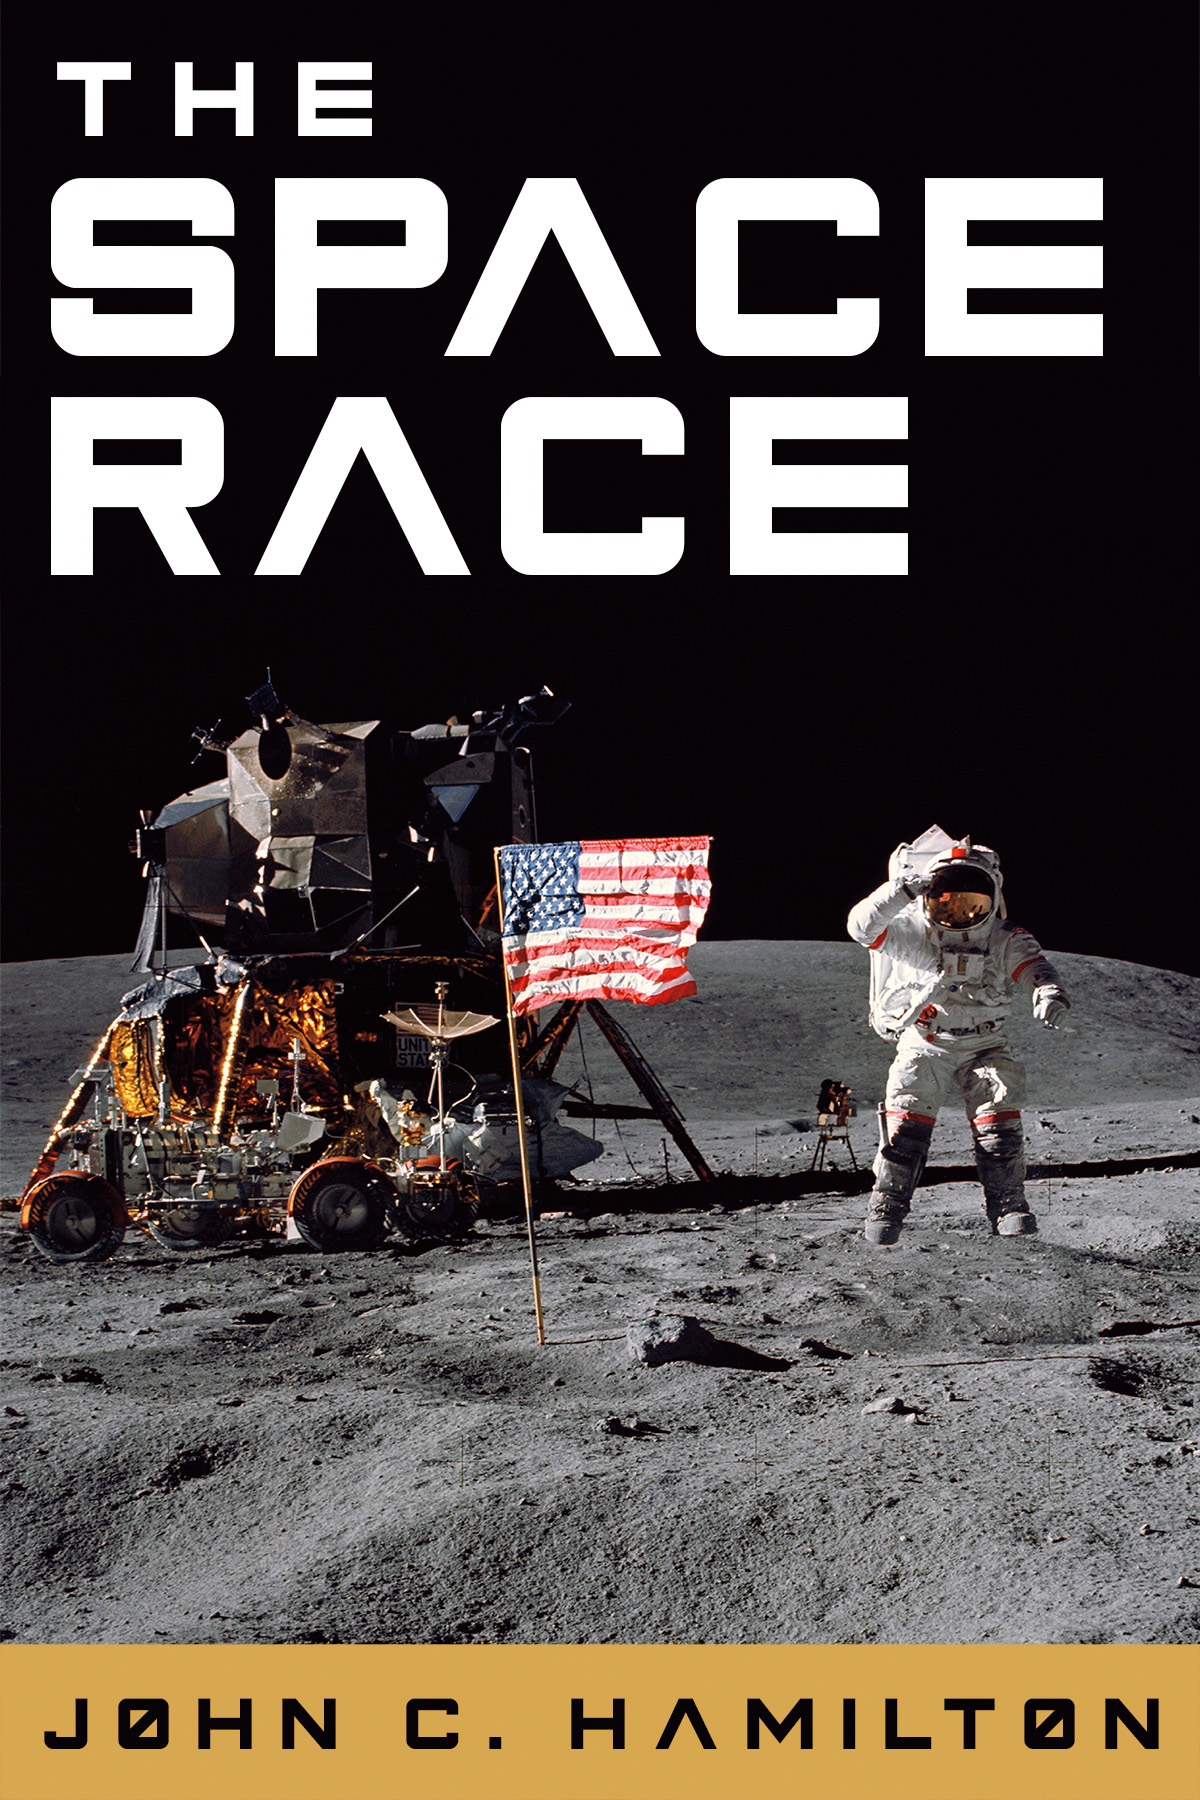 2019 Space Race Cover 1200x1800 sRGB.jpg